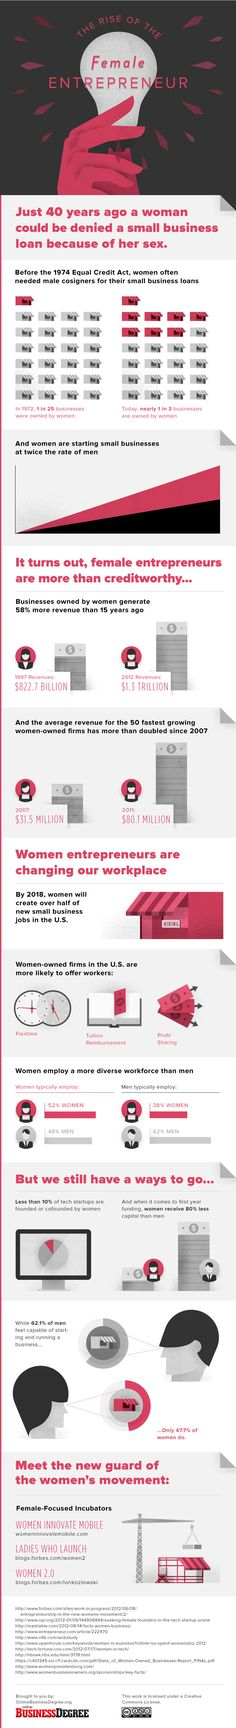 The History Of Female Entrepreneurship. Just 40 Years ago a woman could be denied a business loan because of her gender [Infographic]